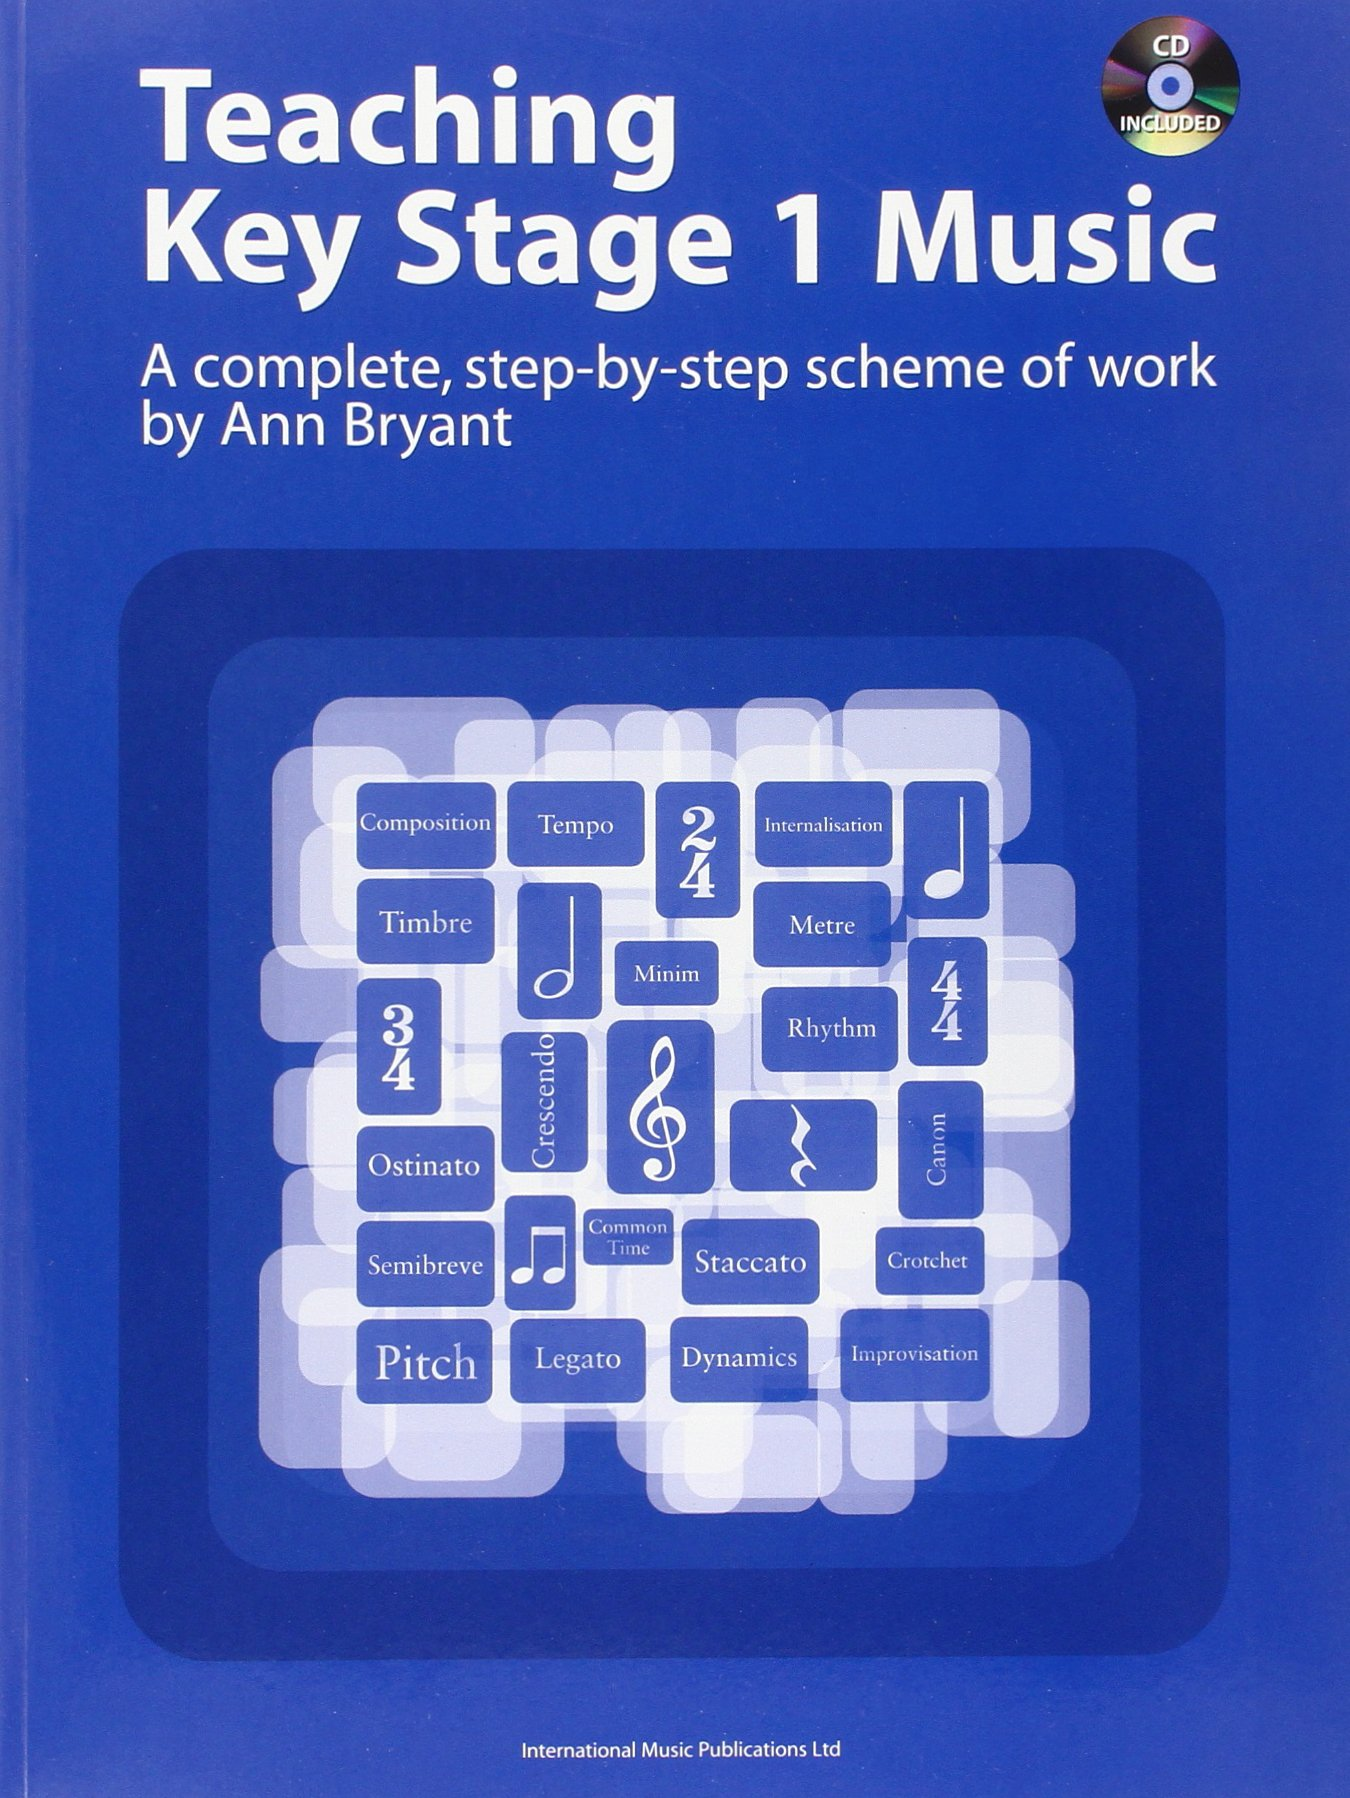 Teaching Key Stage 1 Music: A Complete, Step-by-Step Scheme of Work (Book & CD) (Teaching Key Stage Music) pdf